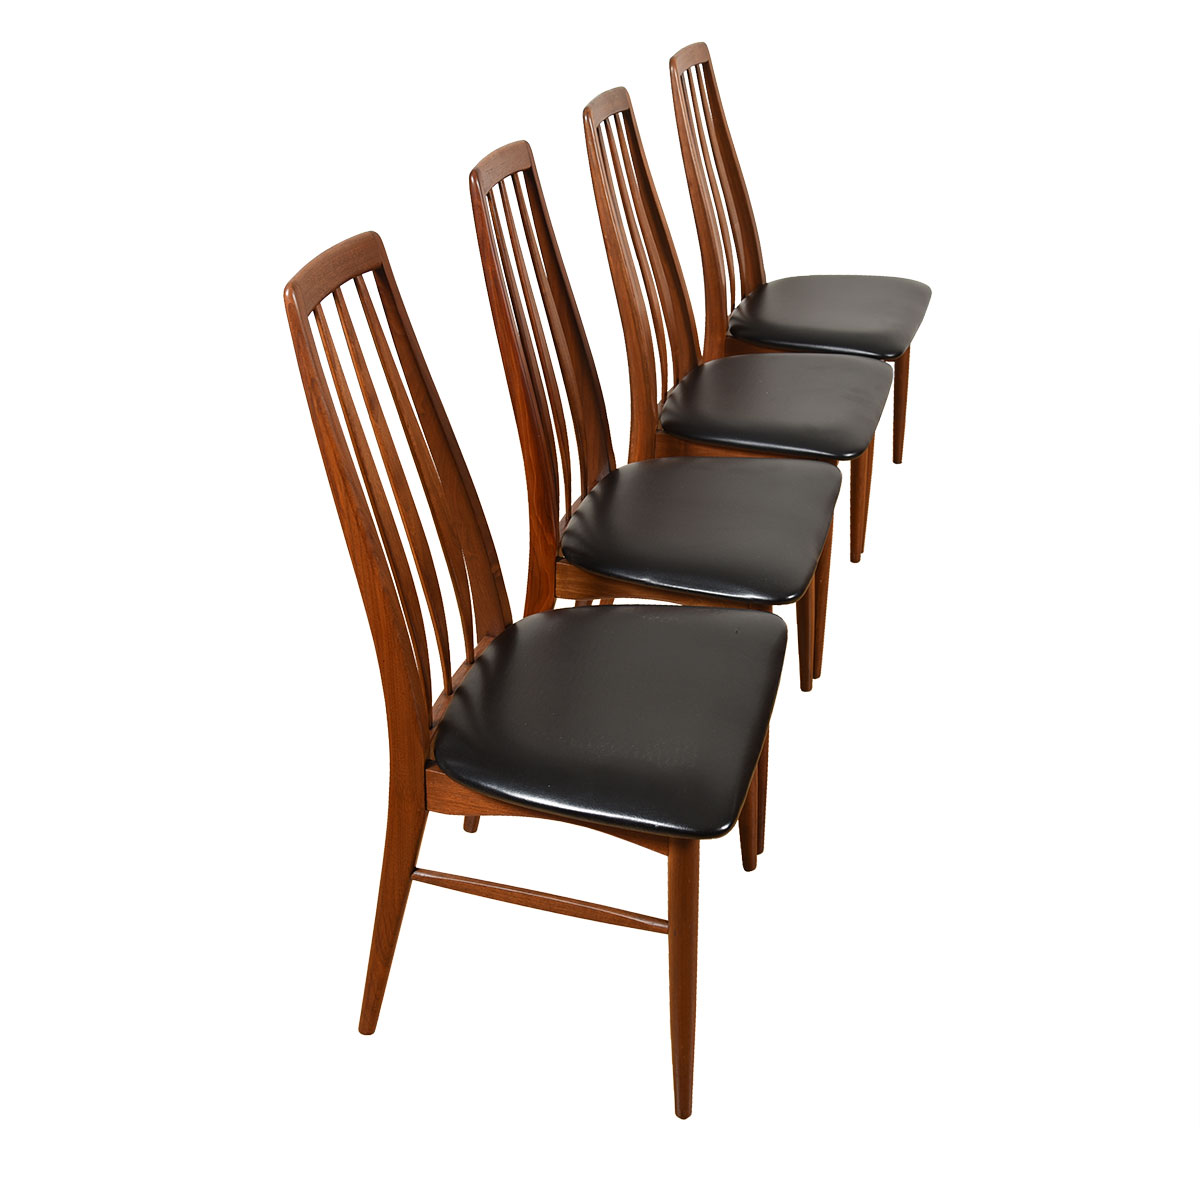 Set of 4 Danish Modern Walnut Dining Chairs